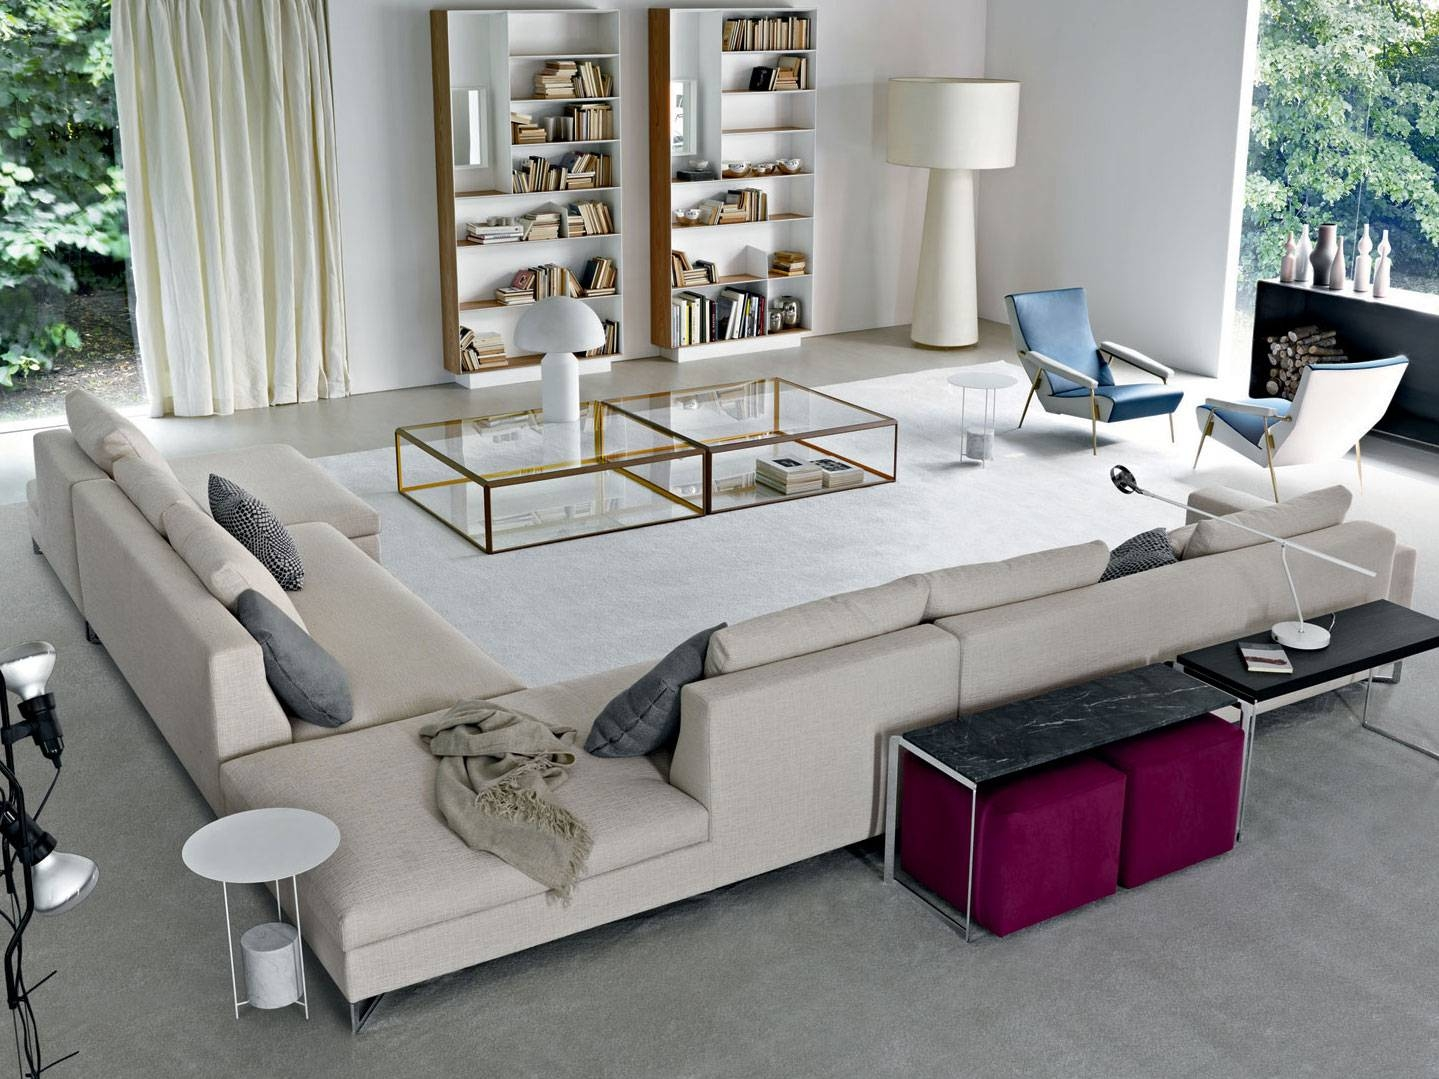 Sofas Center : Billie Jean Large Sectional Sofa With Double Chaise within Huge Sofas (Image 24 of 30)